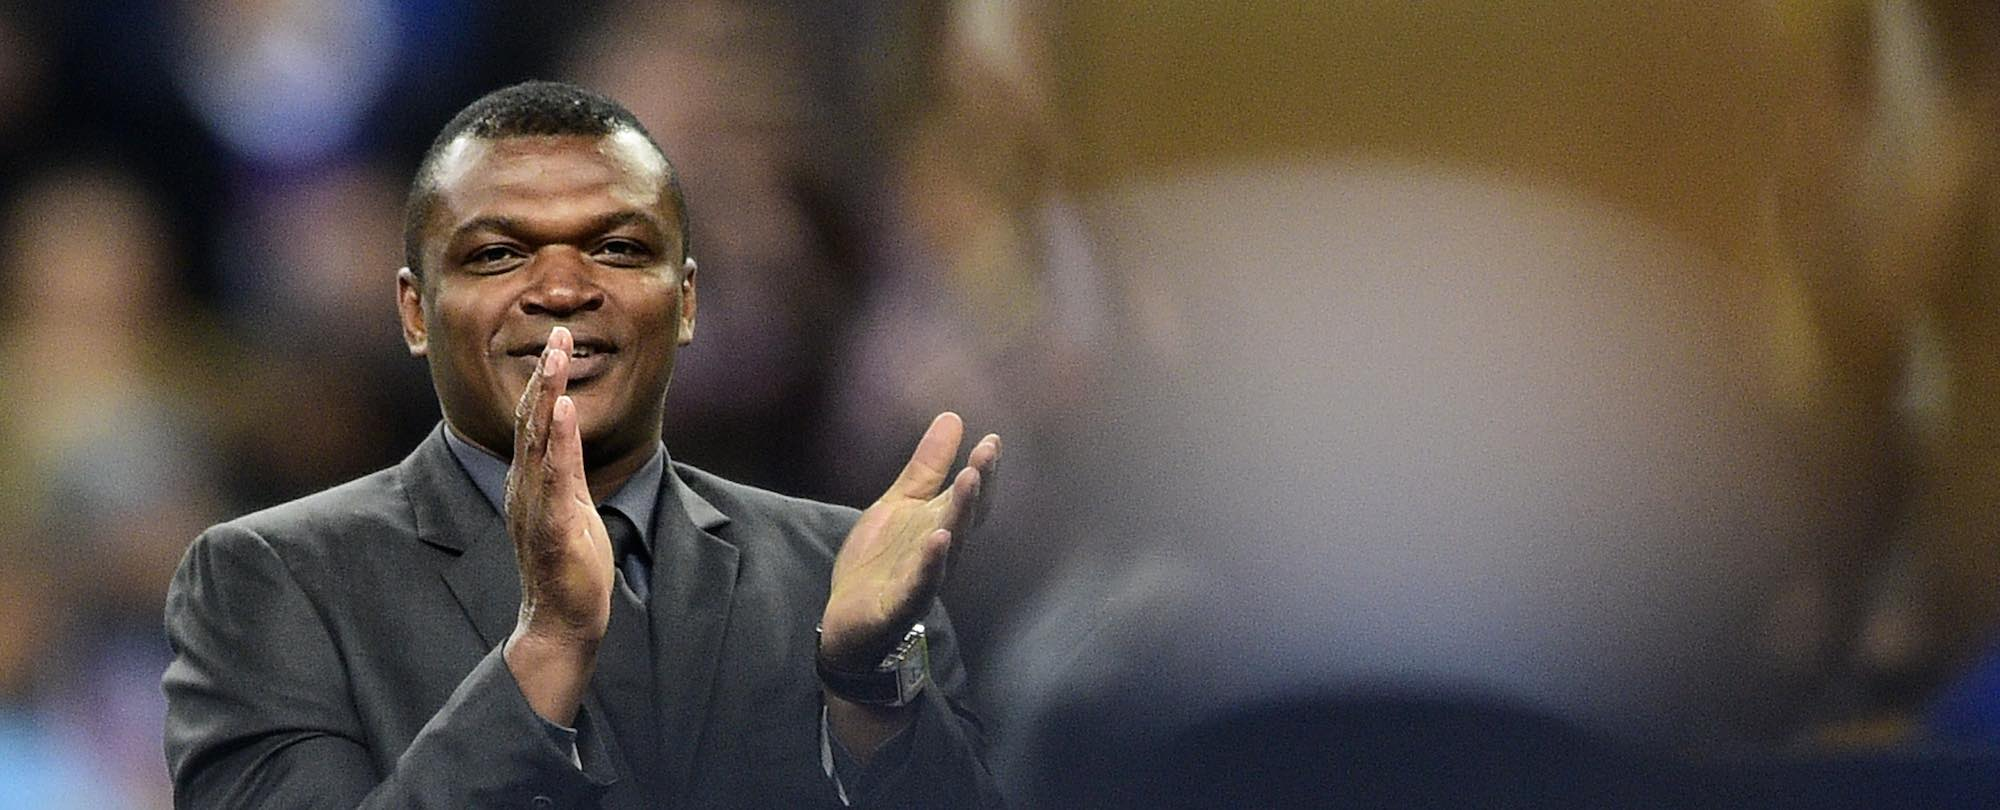 Marcel Desailly tipped to coach Ghana s national team